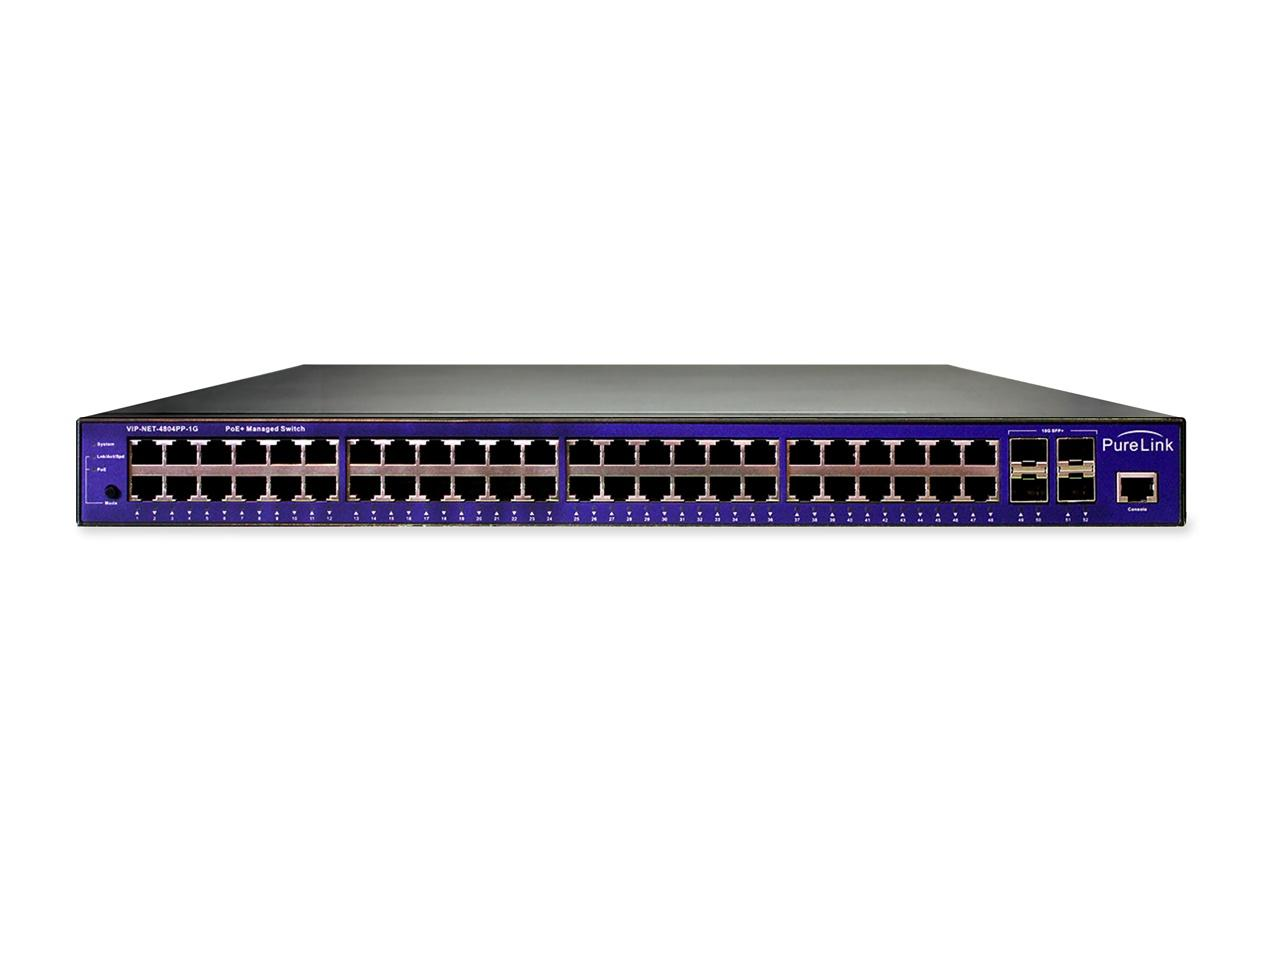 PureLink VIP-NET-4804PP-1G PoE  Gigabit Network Switch (48 Port 1000Base-T/4 Port 10GbE SFP )